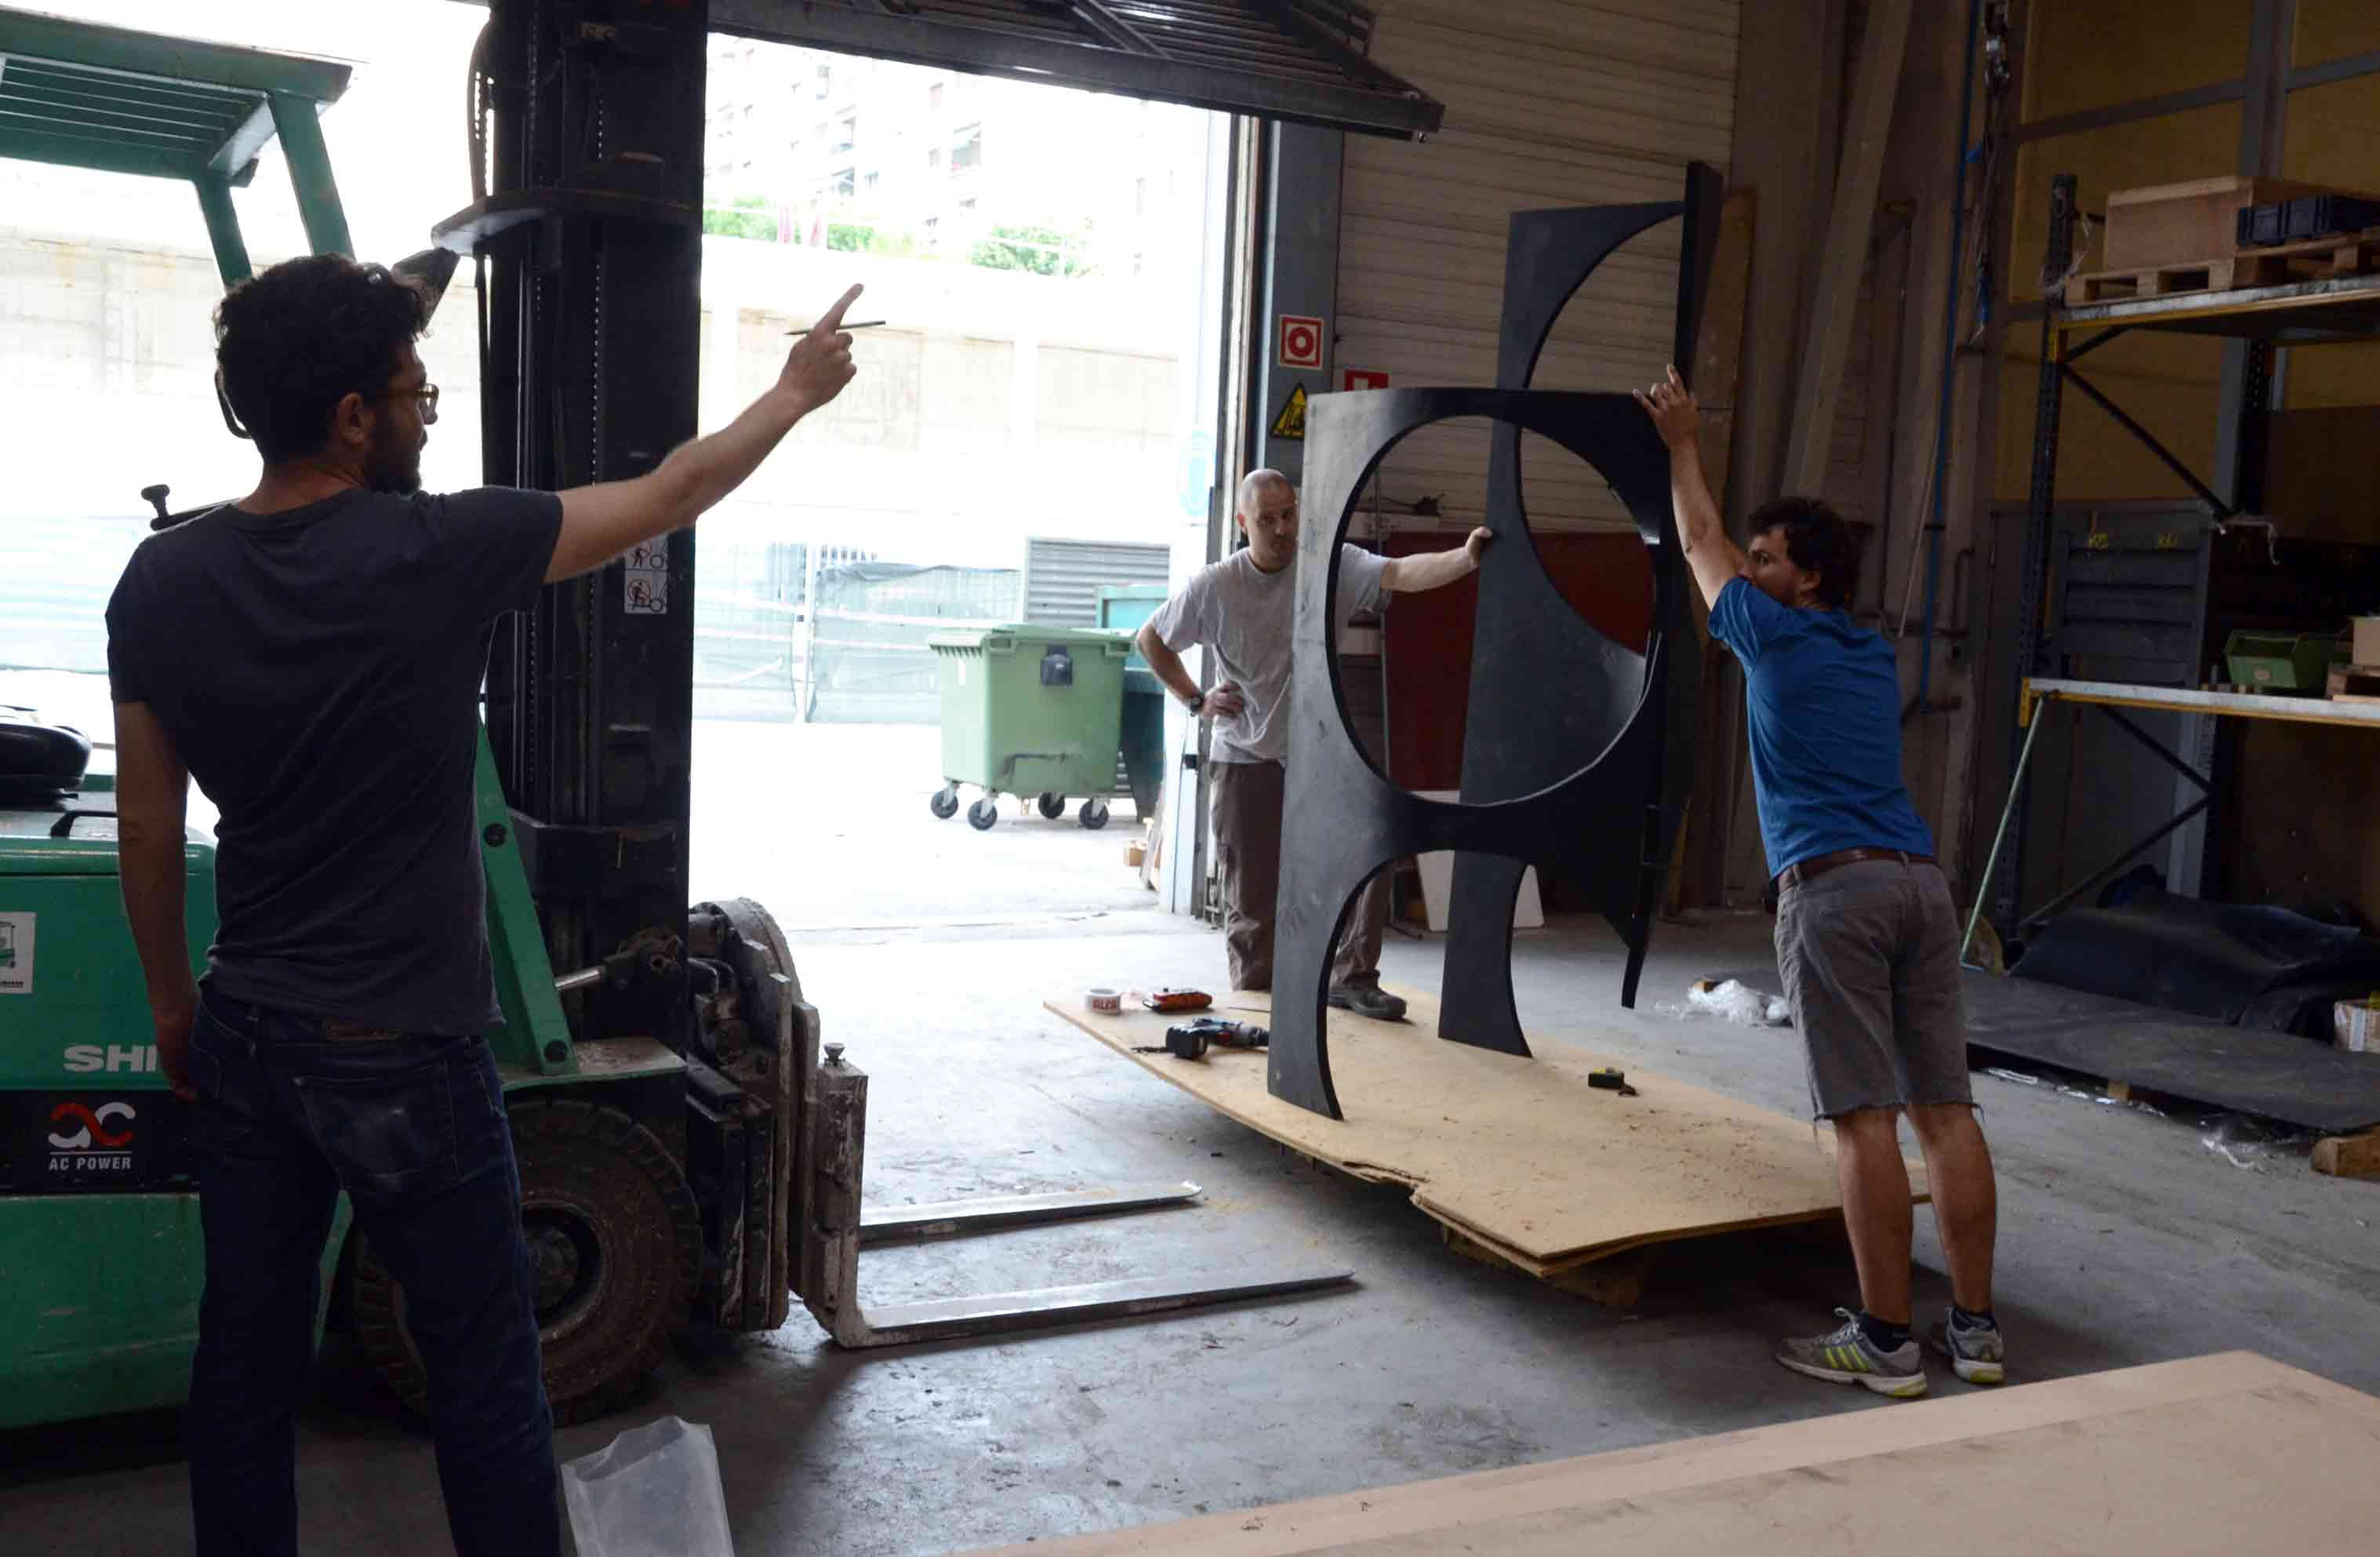 Asier Mendizabal coordinates the assembly of his sculpture AGORAMAQUIA in Alfa Arte